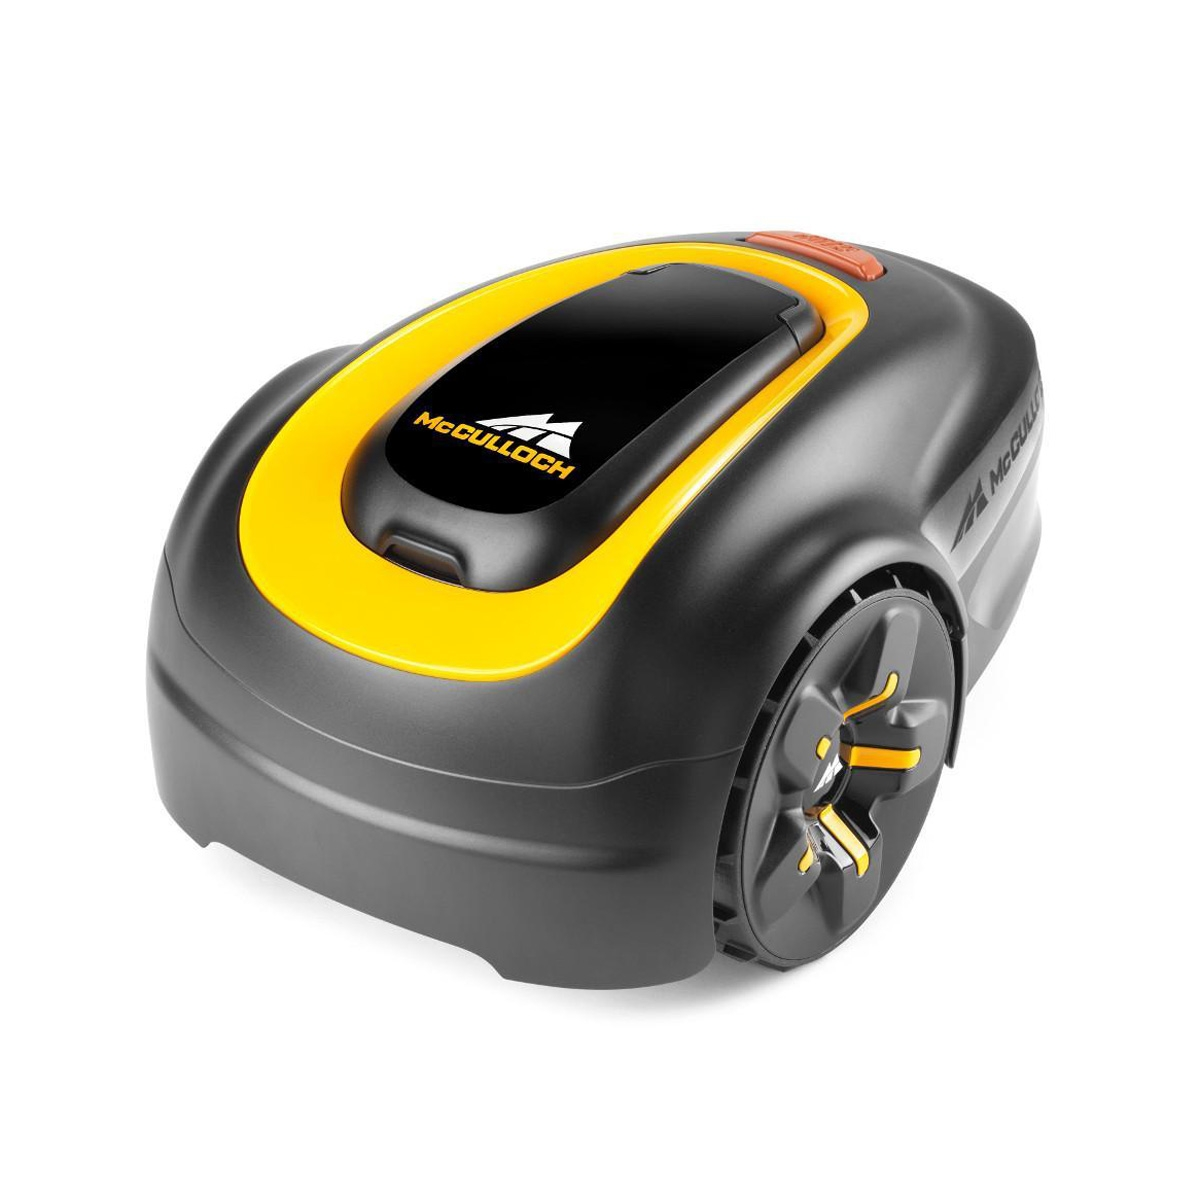 About S600 Mower Mcculloch Rob Lawn Battery With Details 0Pnw8Ok